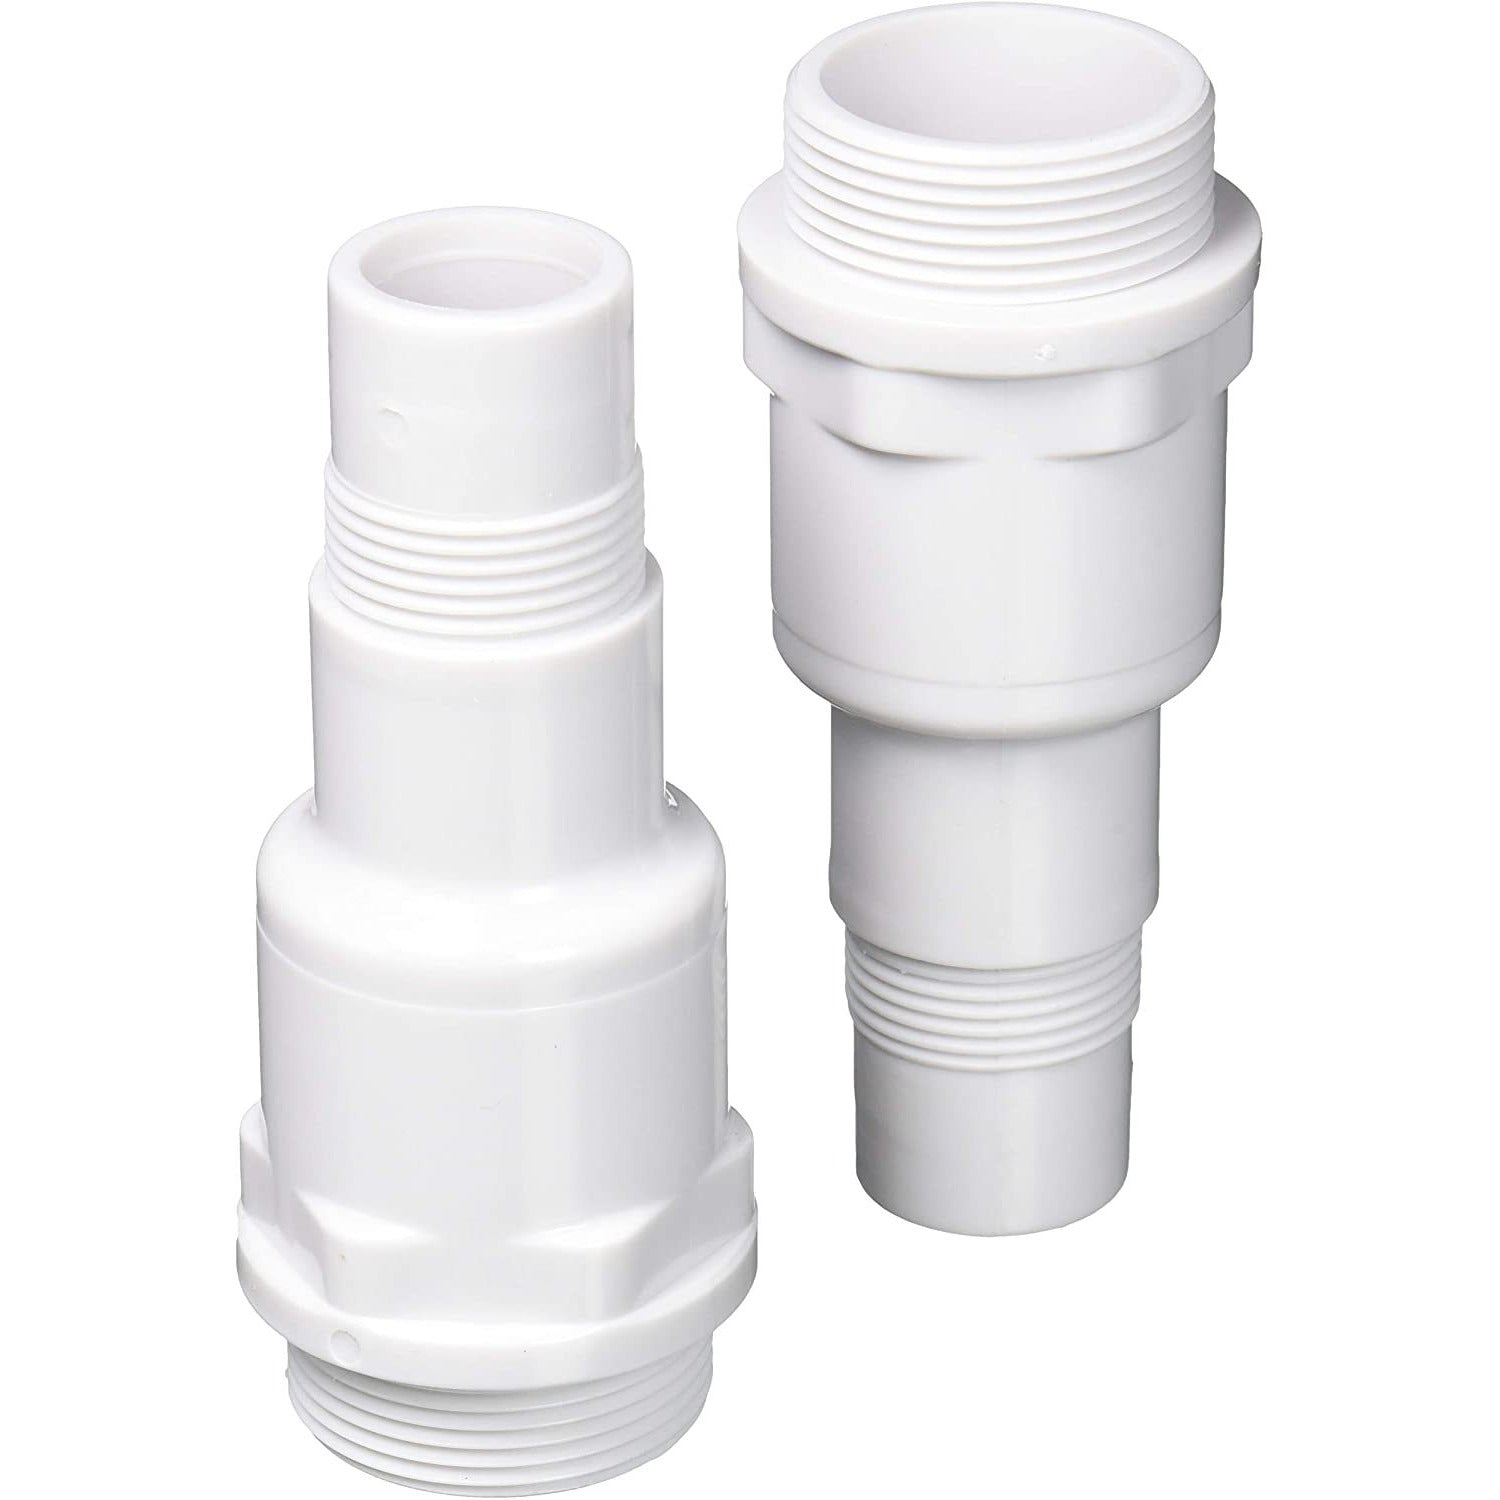 "GAME 4564 Hose Connectors Above Ground Pool Replacement Part, 1.5"", White"